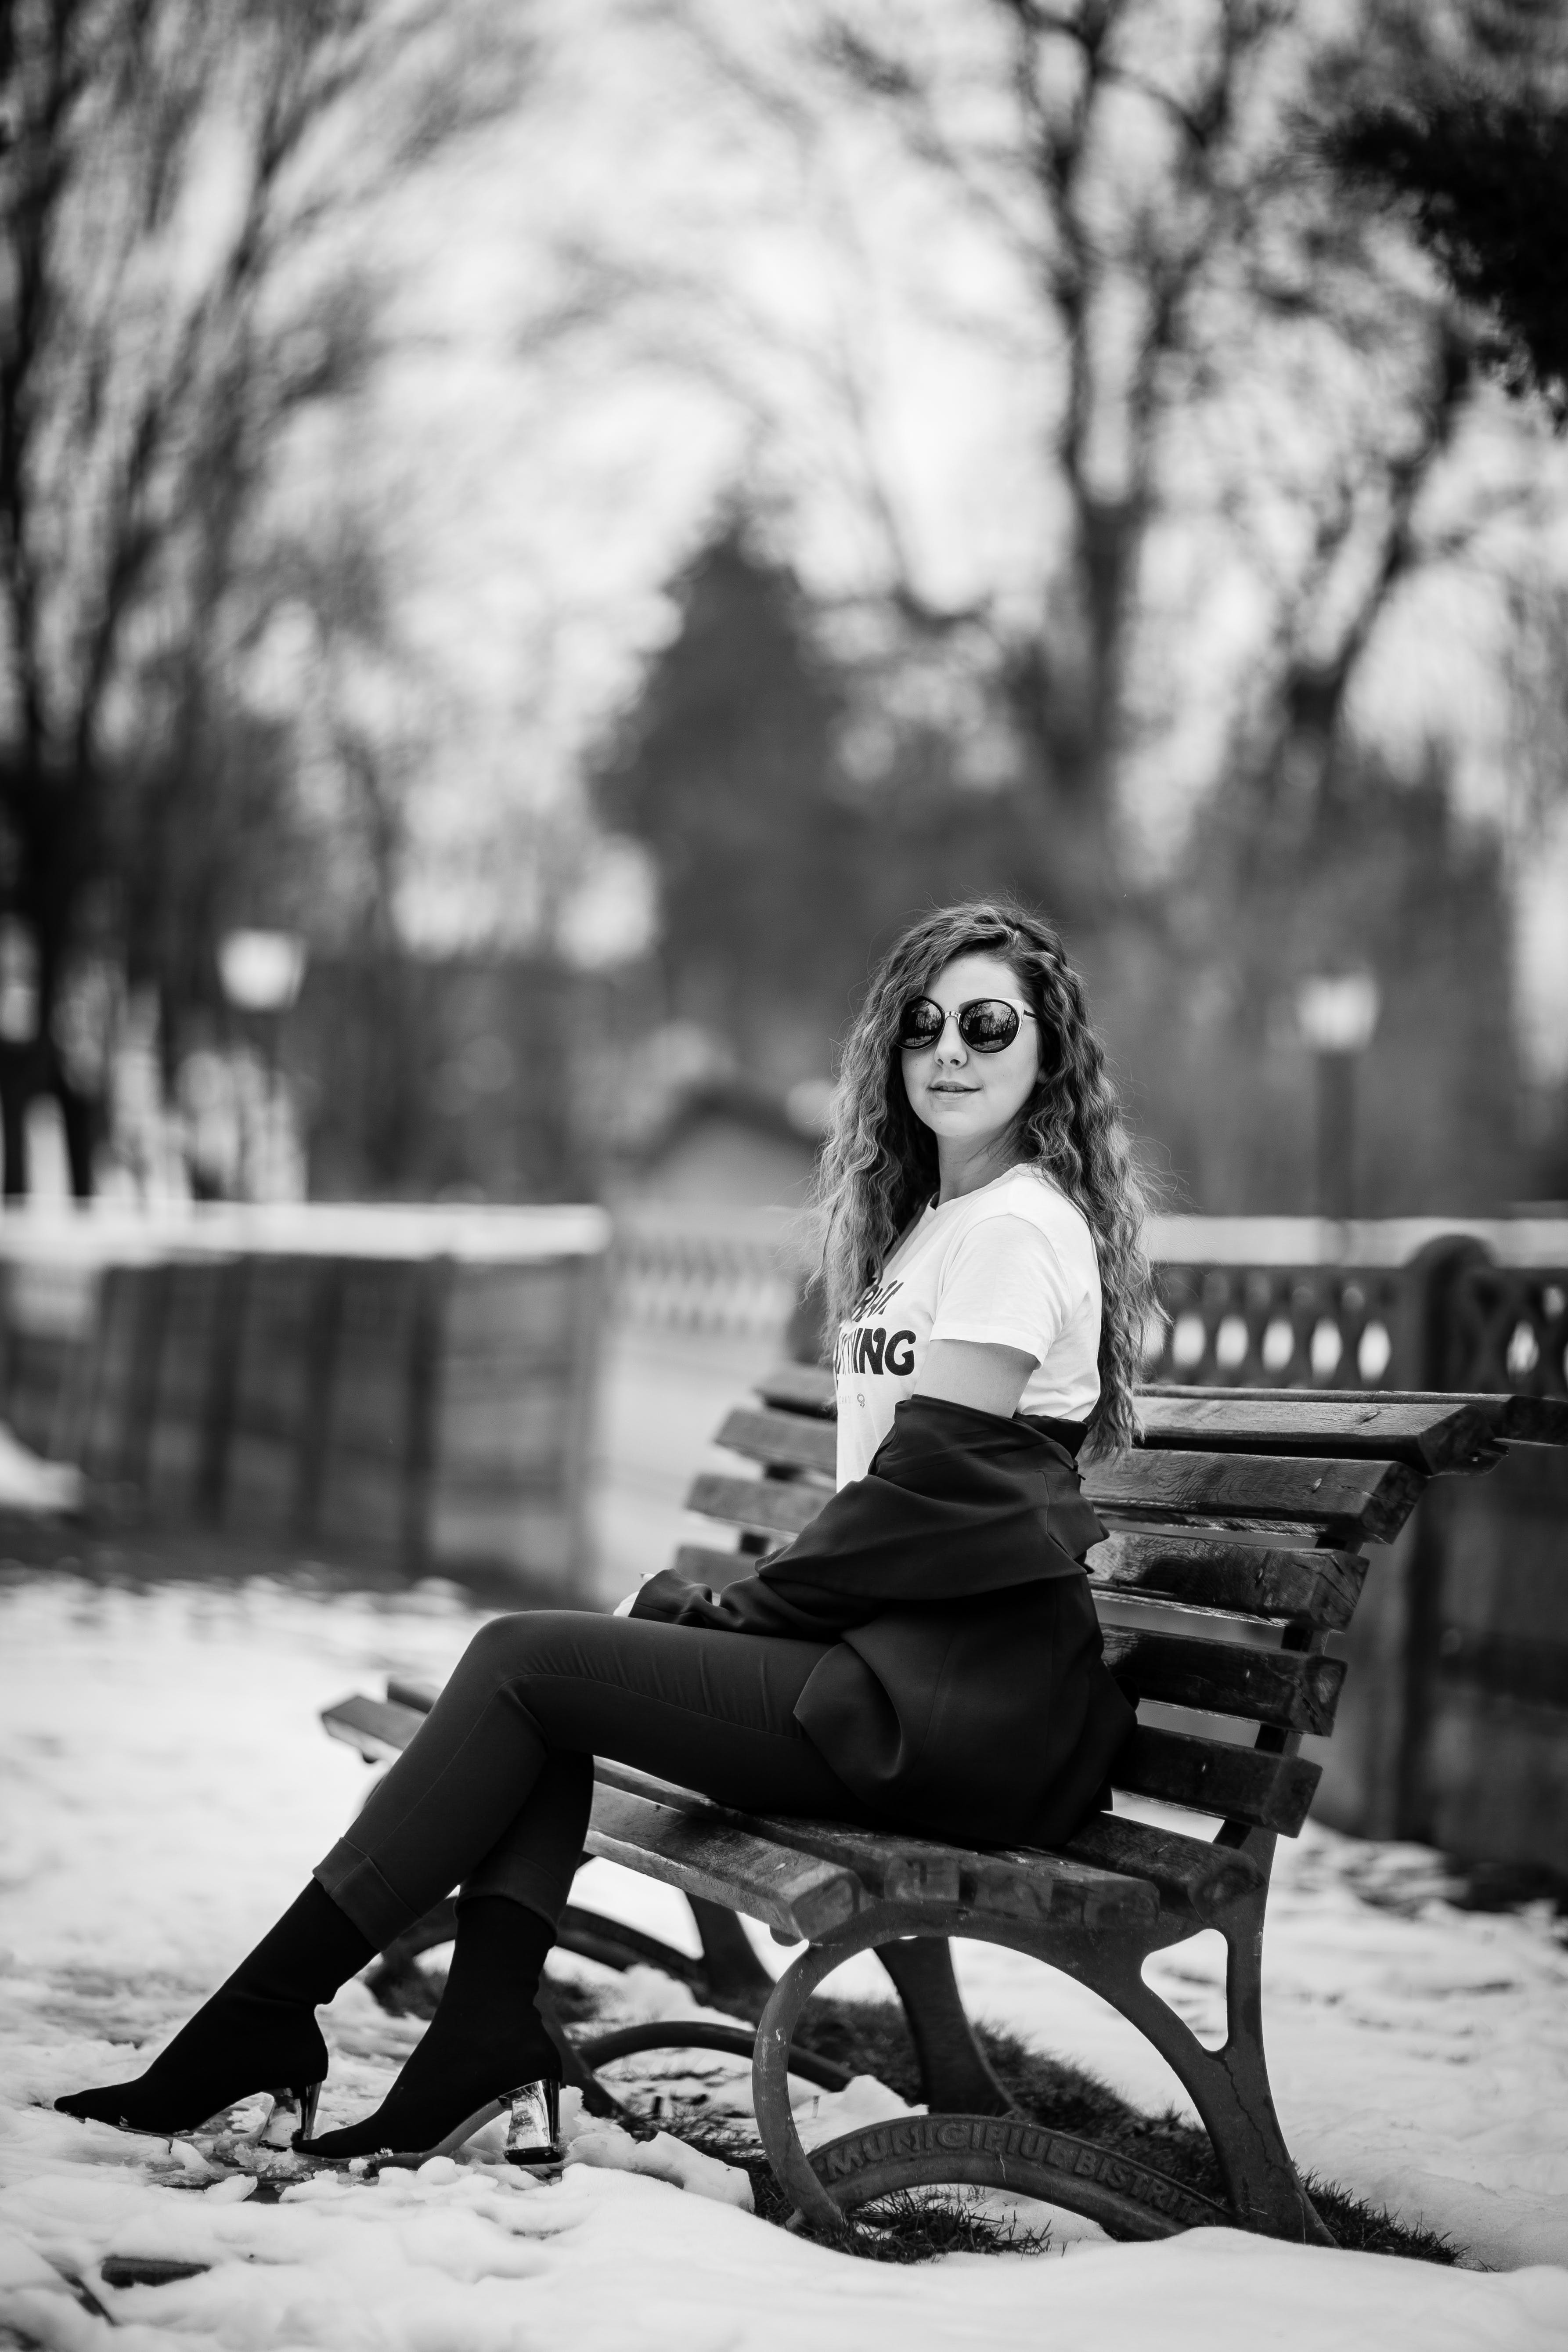 Grayscale Photography of Woman Sitting on Bench